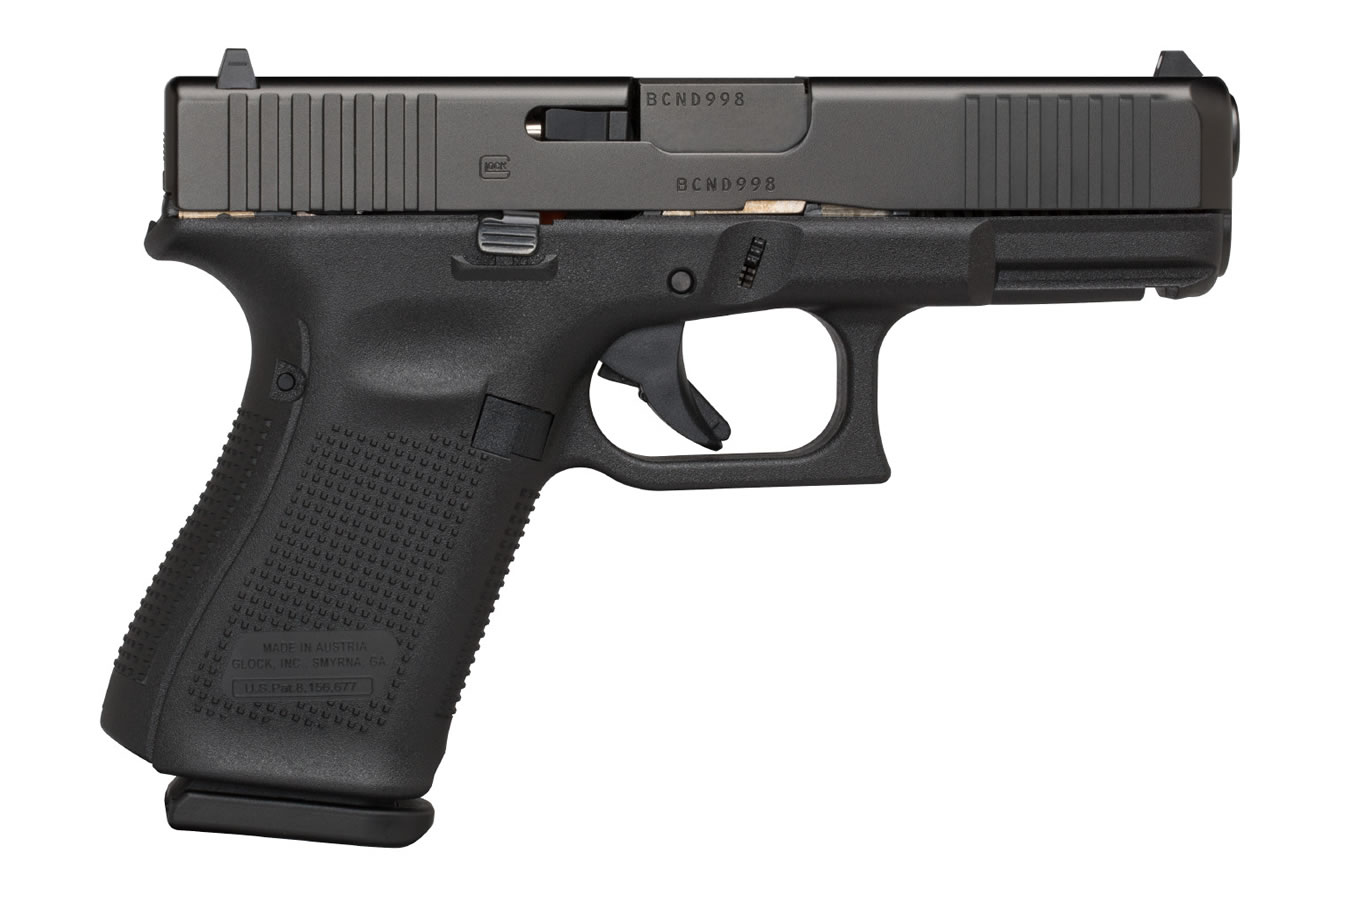 19 GEN5 9MM 15-ROUND PISTOL WITH FRONT SERREATIONS